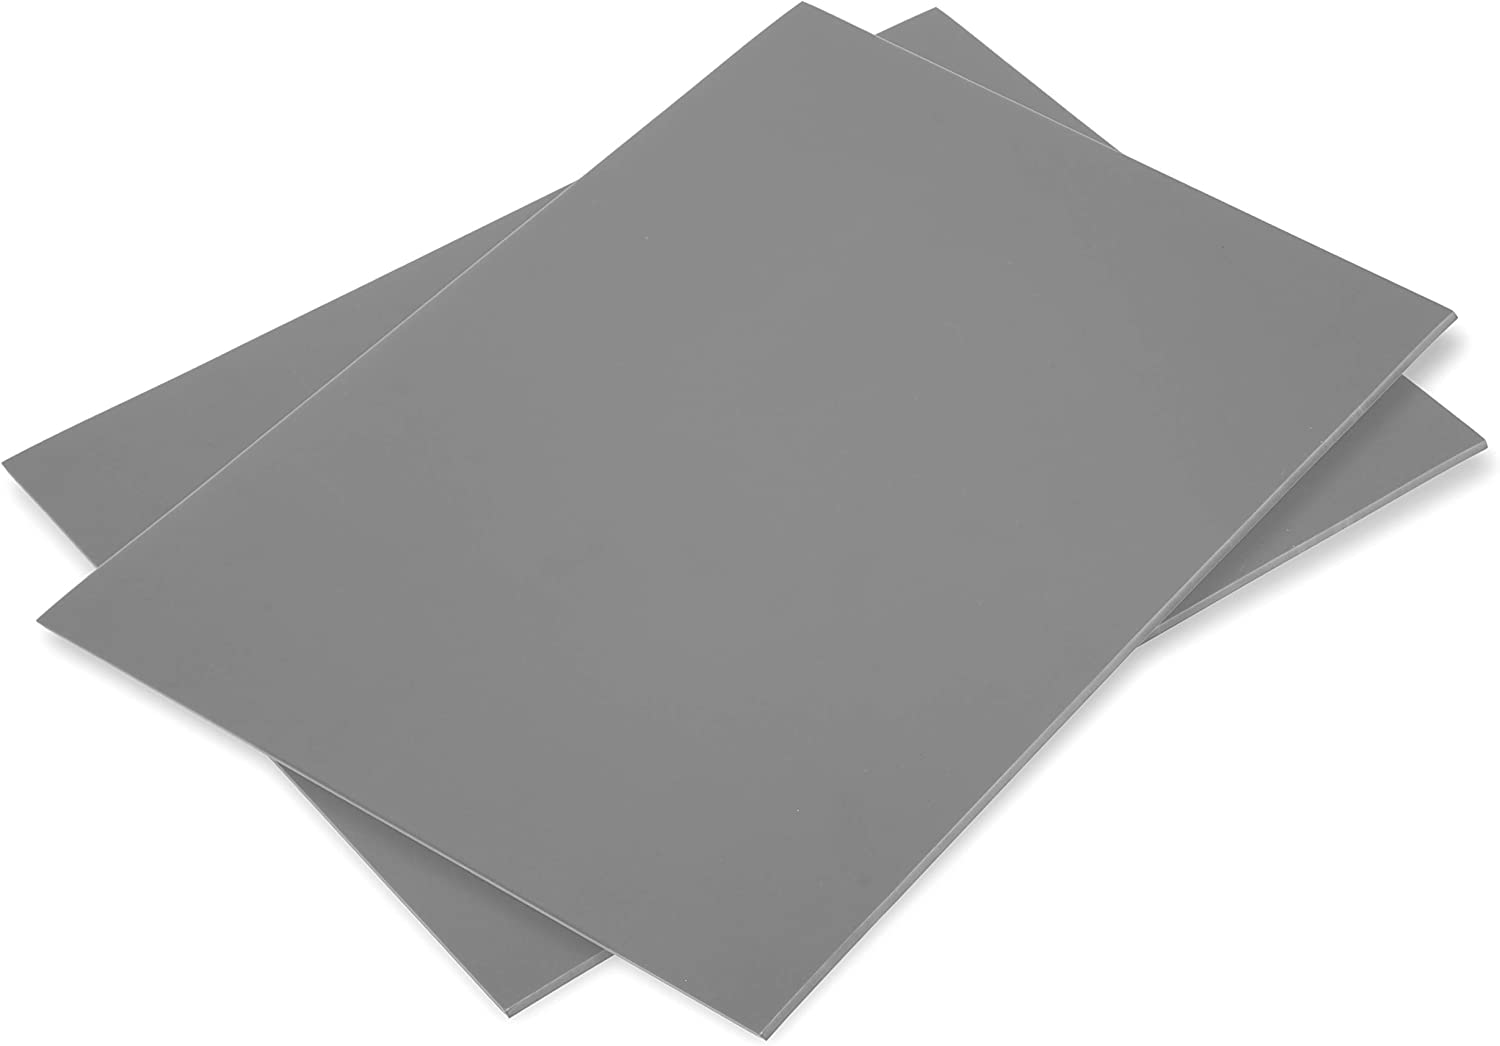 Falling in Art Soft Linoleum Carving Block 9 Inches by 12 Inches 2-Pack Grey